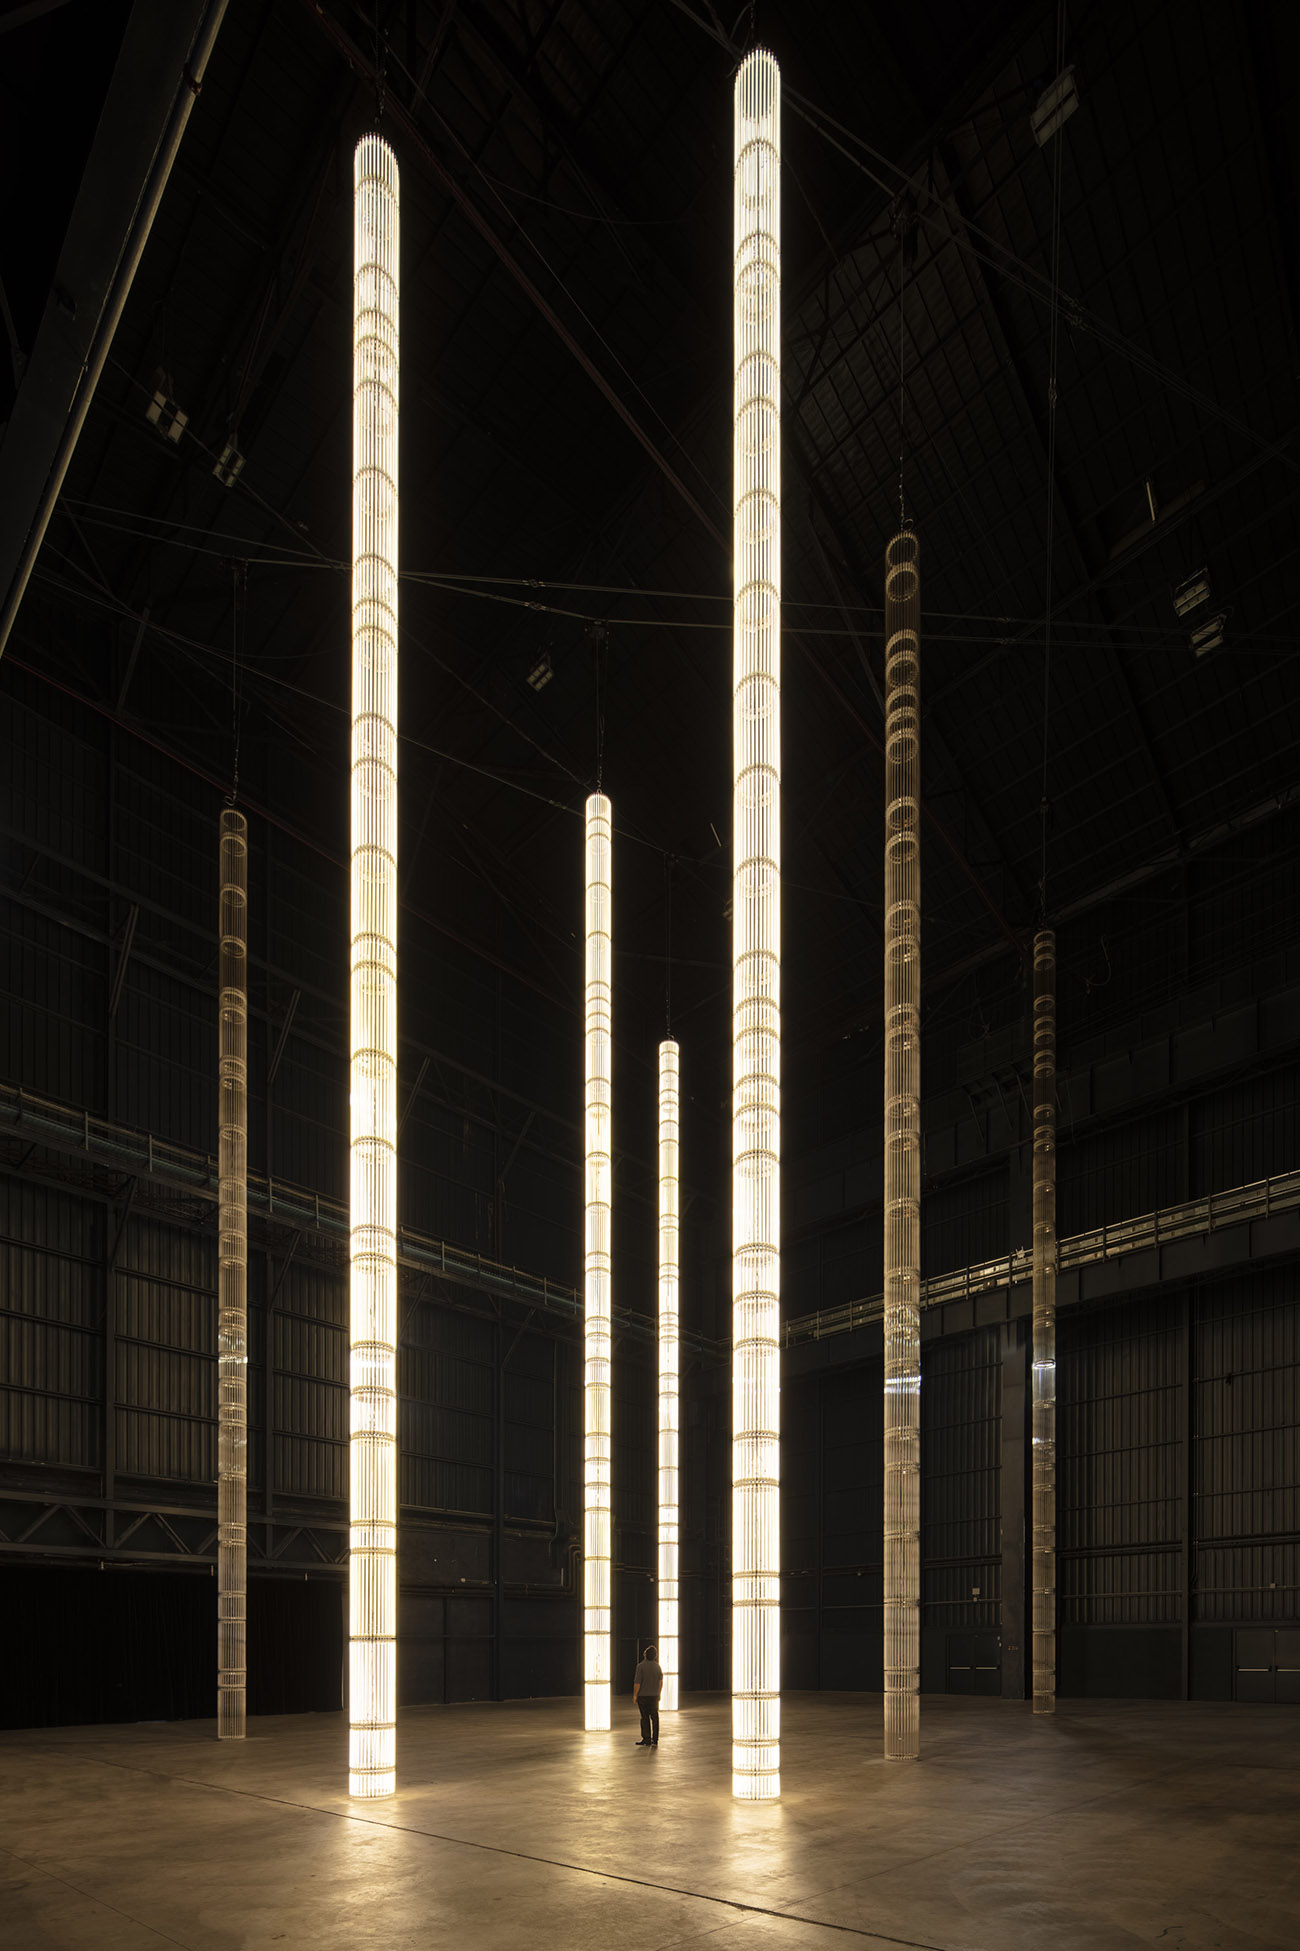 Cerith Wyn Evans, StarStarStar/Steer (totransversephoton), 2019, Installation View, Pirelli HangarBicocca, Milano 2019. Courtesy of the artist; White Cube and Pirelli HangarBicocca.